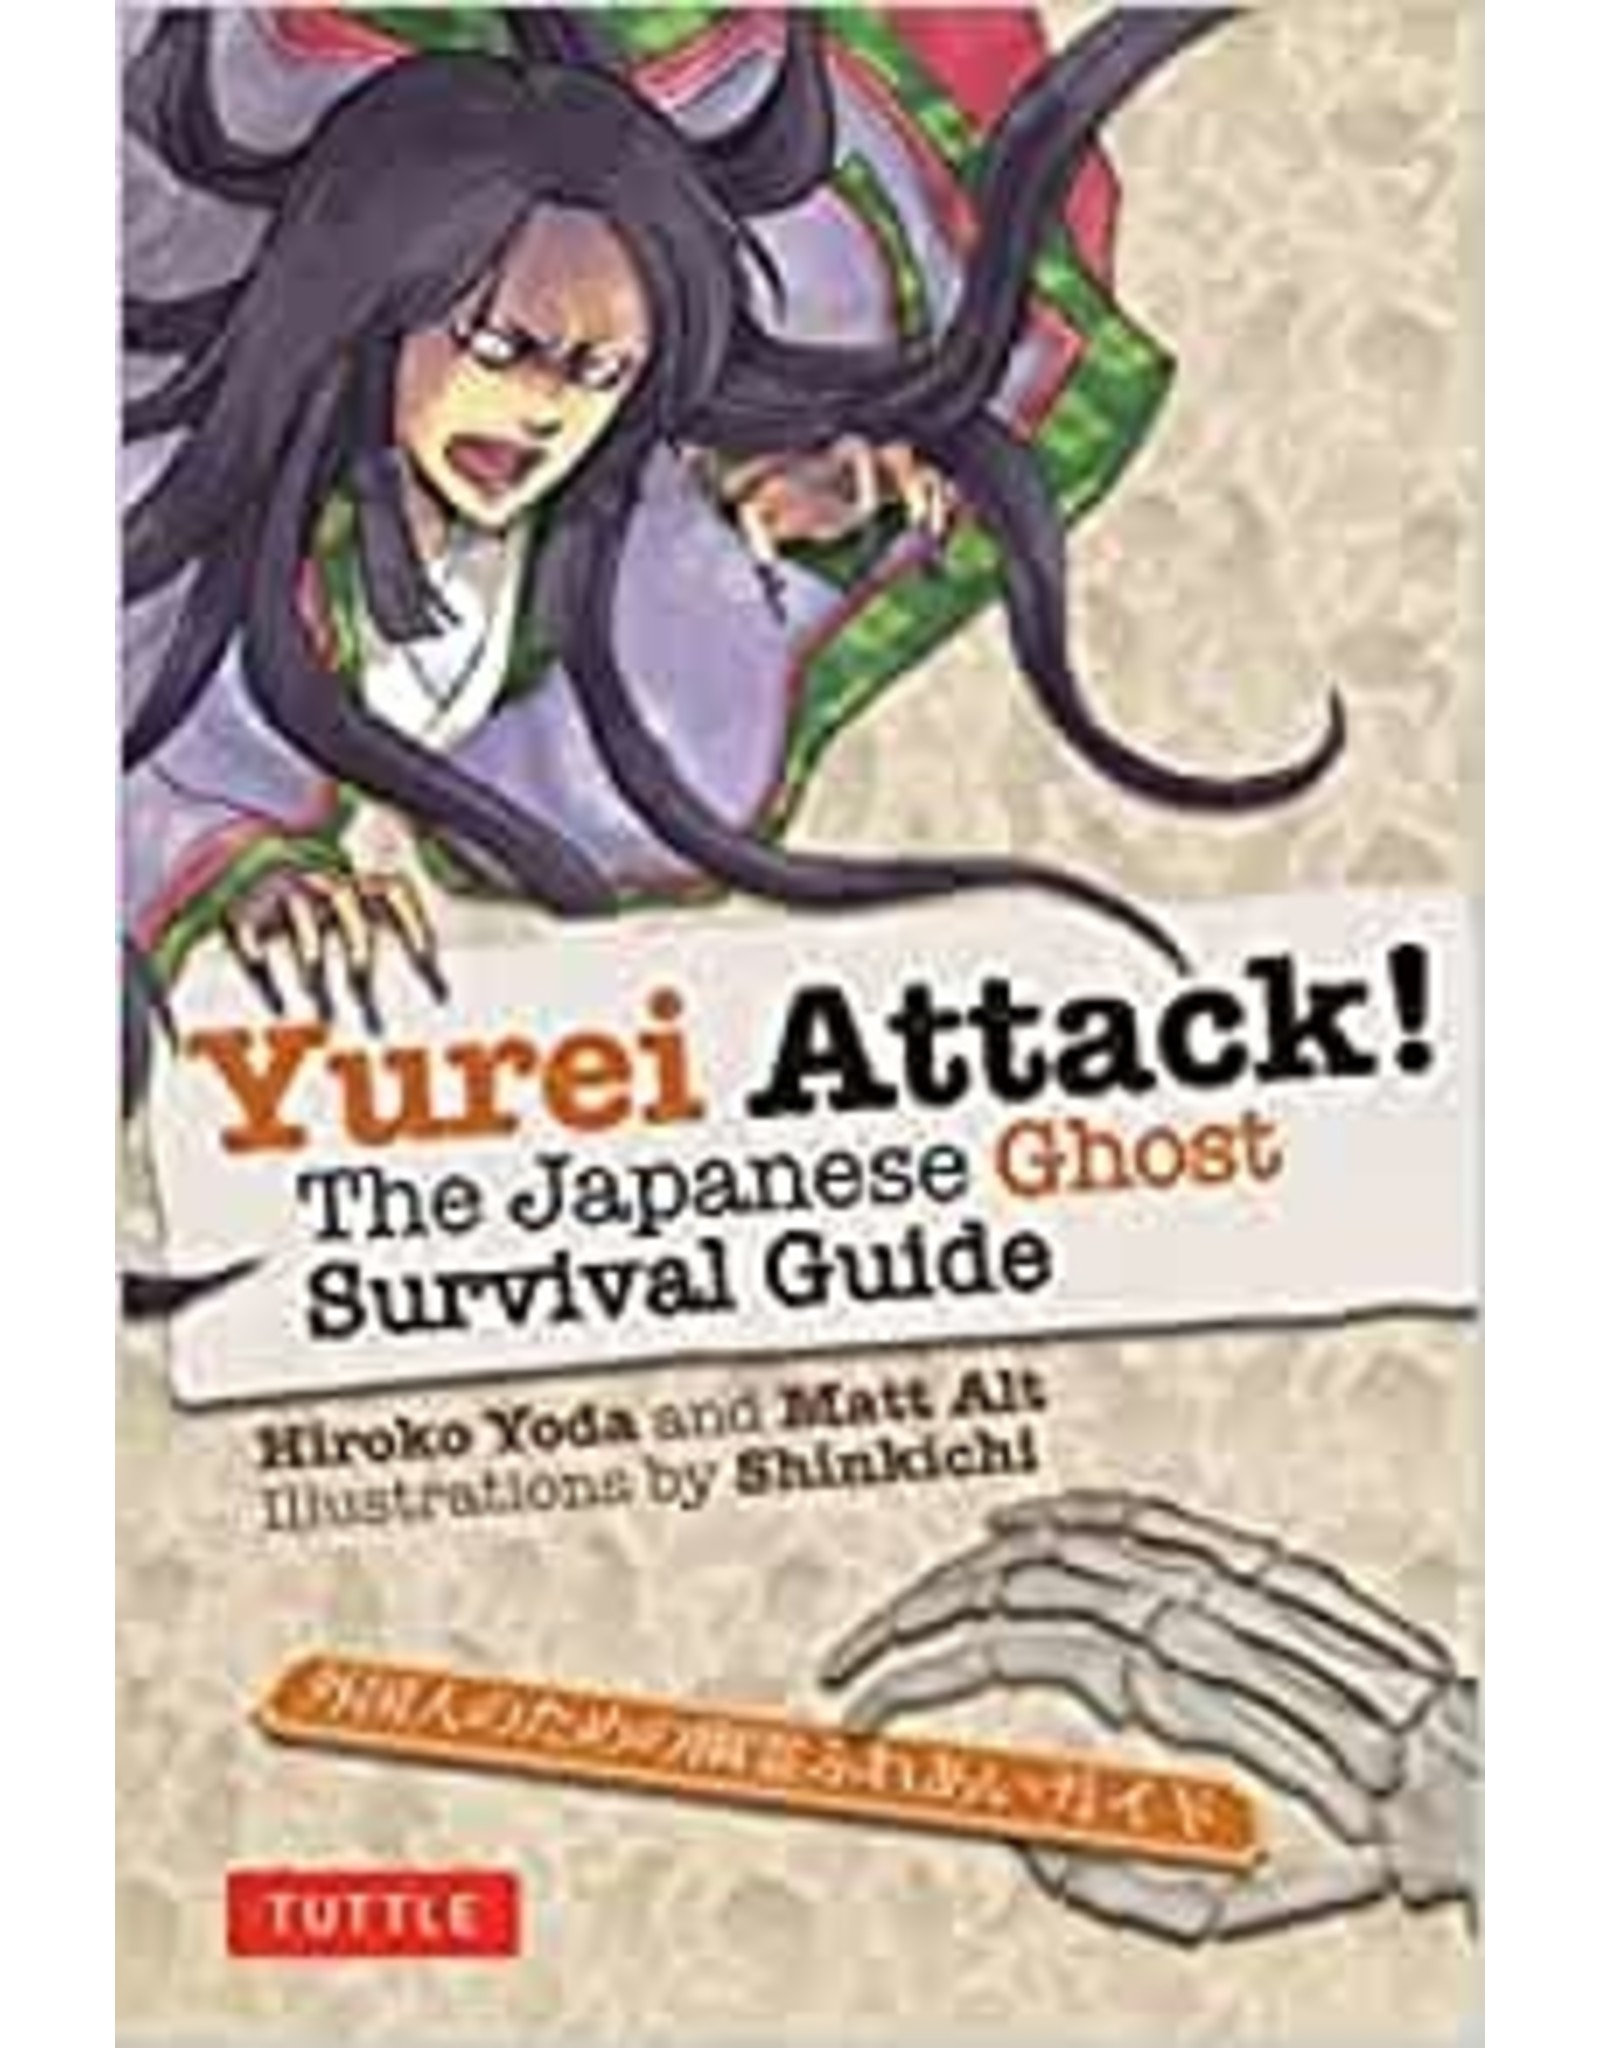 Tuttle Publishing YUREI ATTACK!: THE JAPANESE GHOST SURVIVAL GUIDE